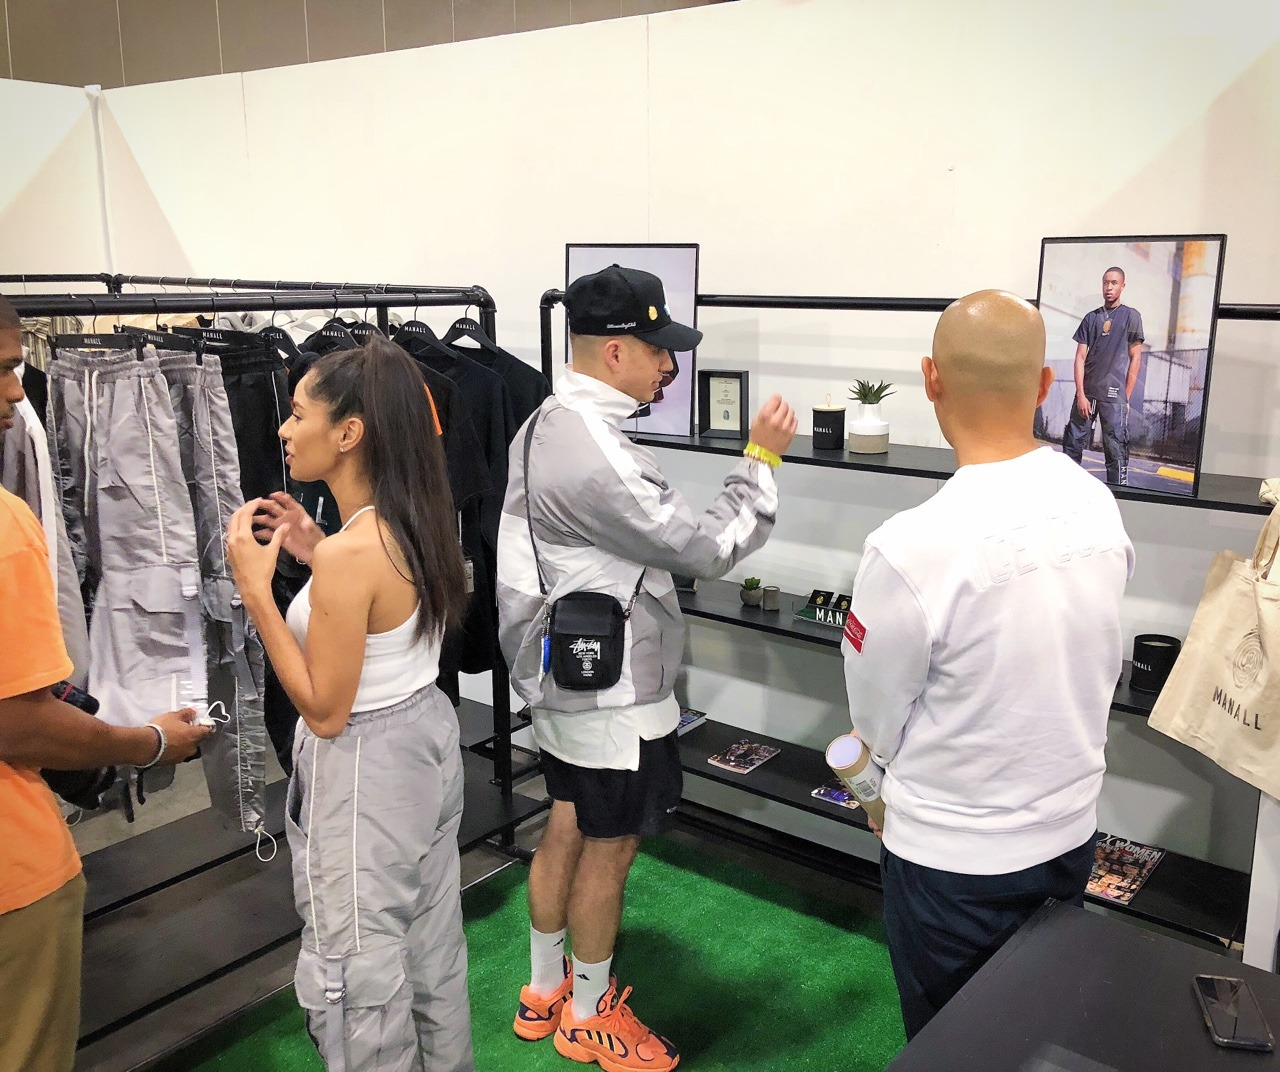 Jeff Staple (far right) chats with Tyler in the M A N A L L booth